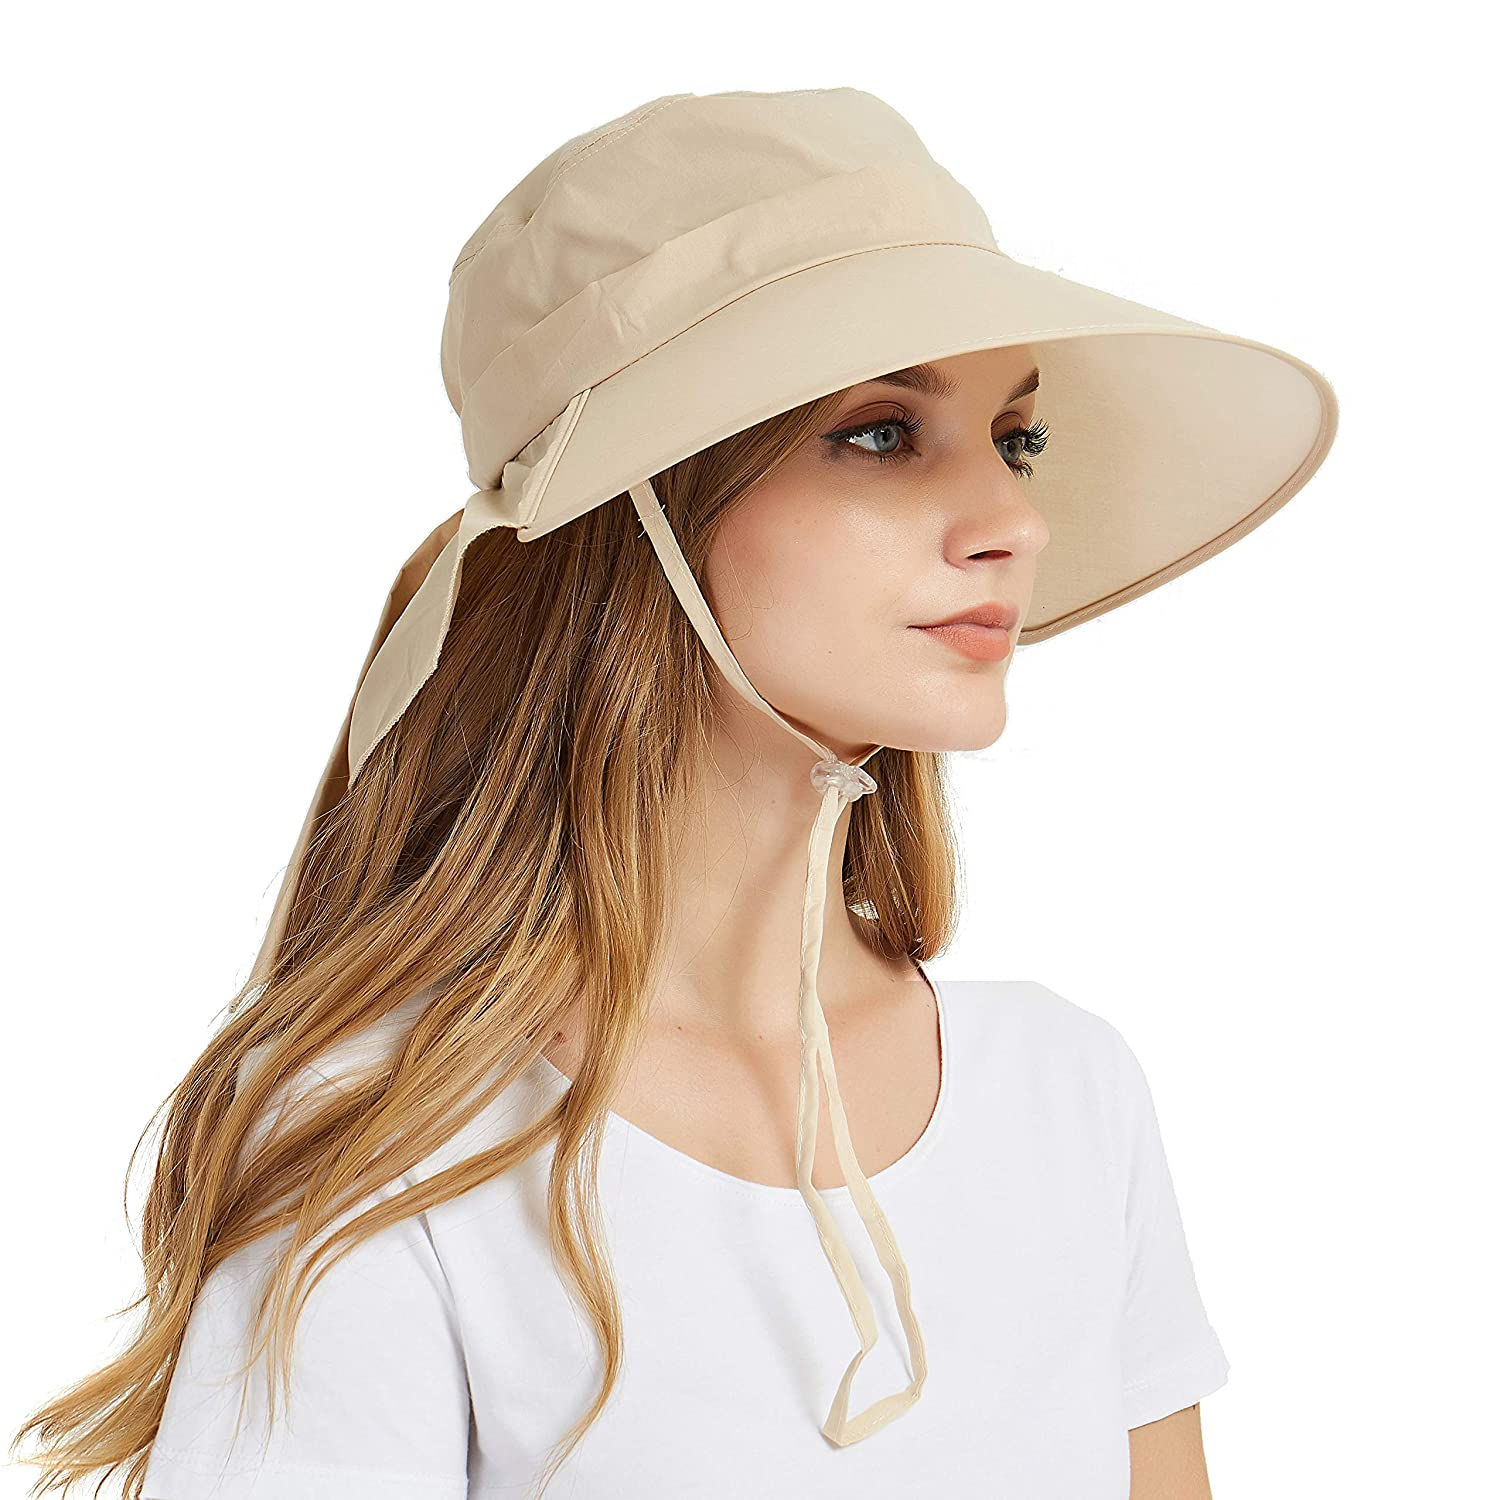 EINSKEY Ladies Sun Hat Summer Womens Wide Brim Packable Cotton Hat with Neck Protection Flap and Chin Strap